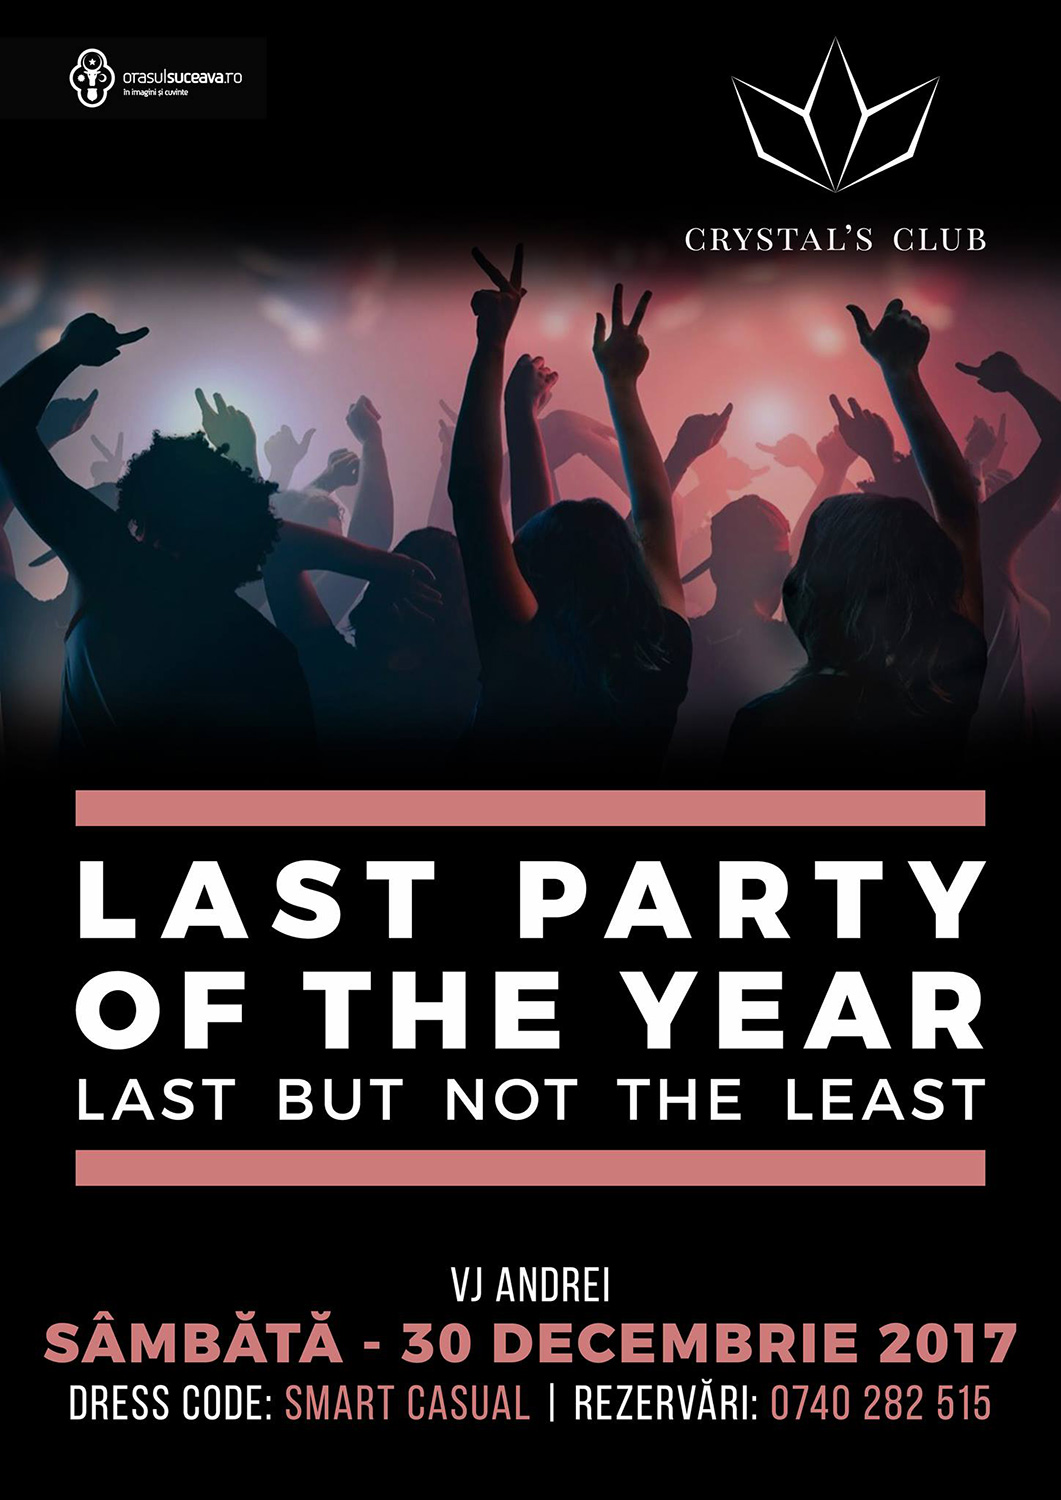 Last Party of the Year. But not the least